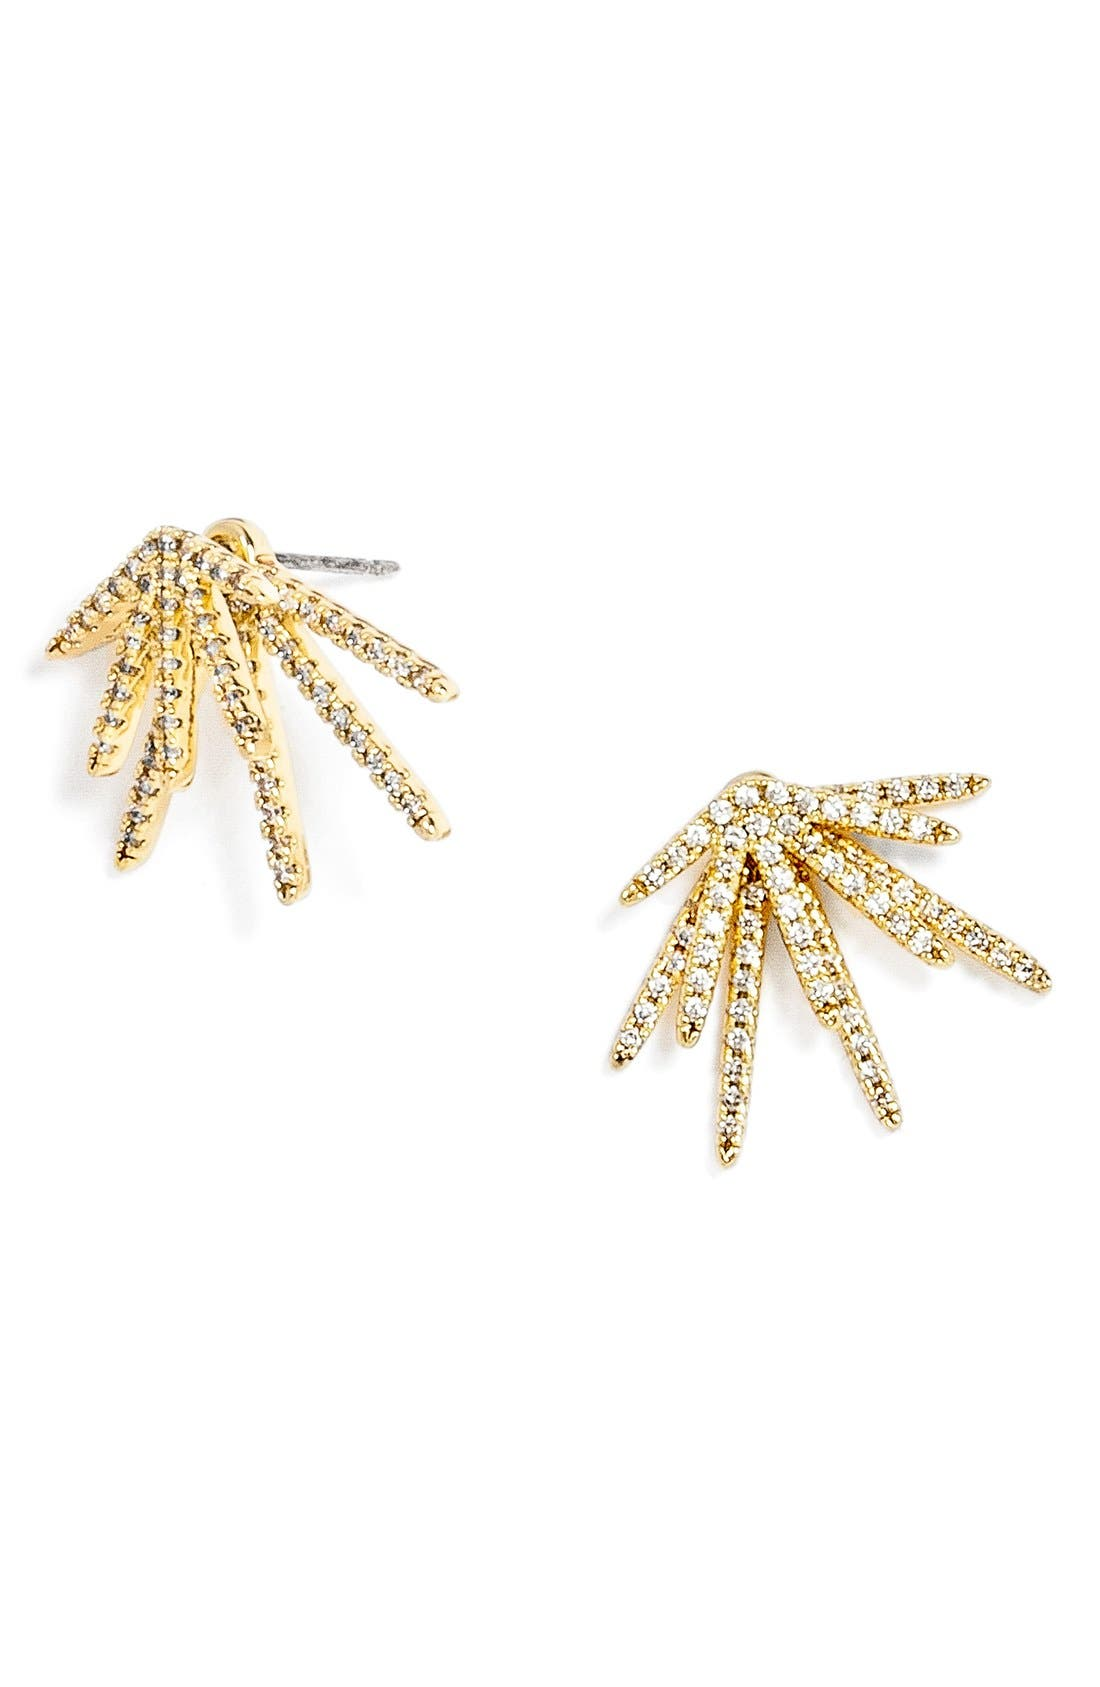 Alternate Image 1 Selected - BaubleBar 'Firecracker' Ear Jackets